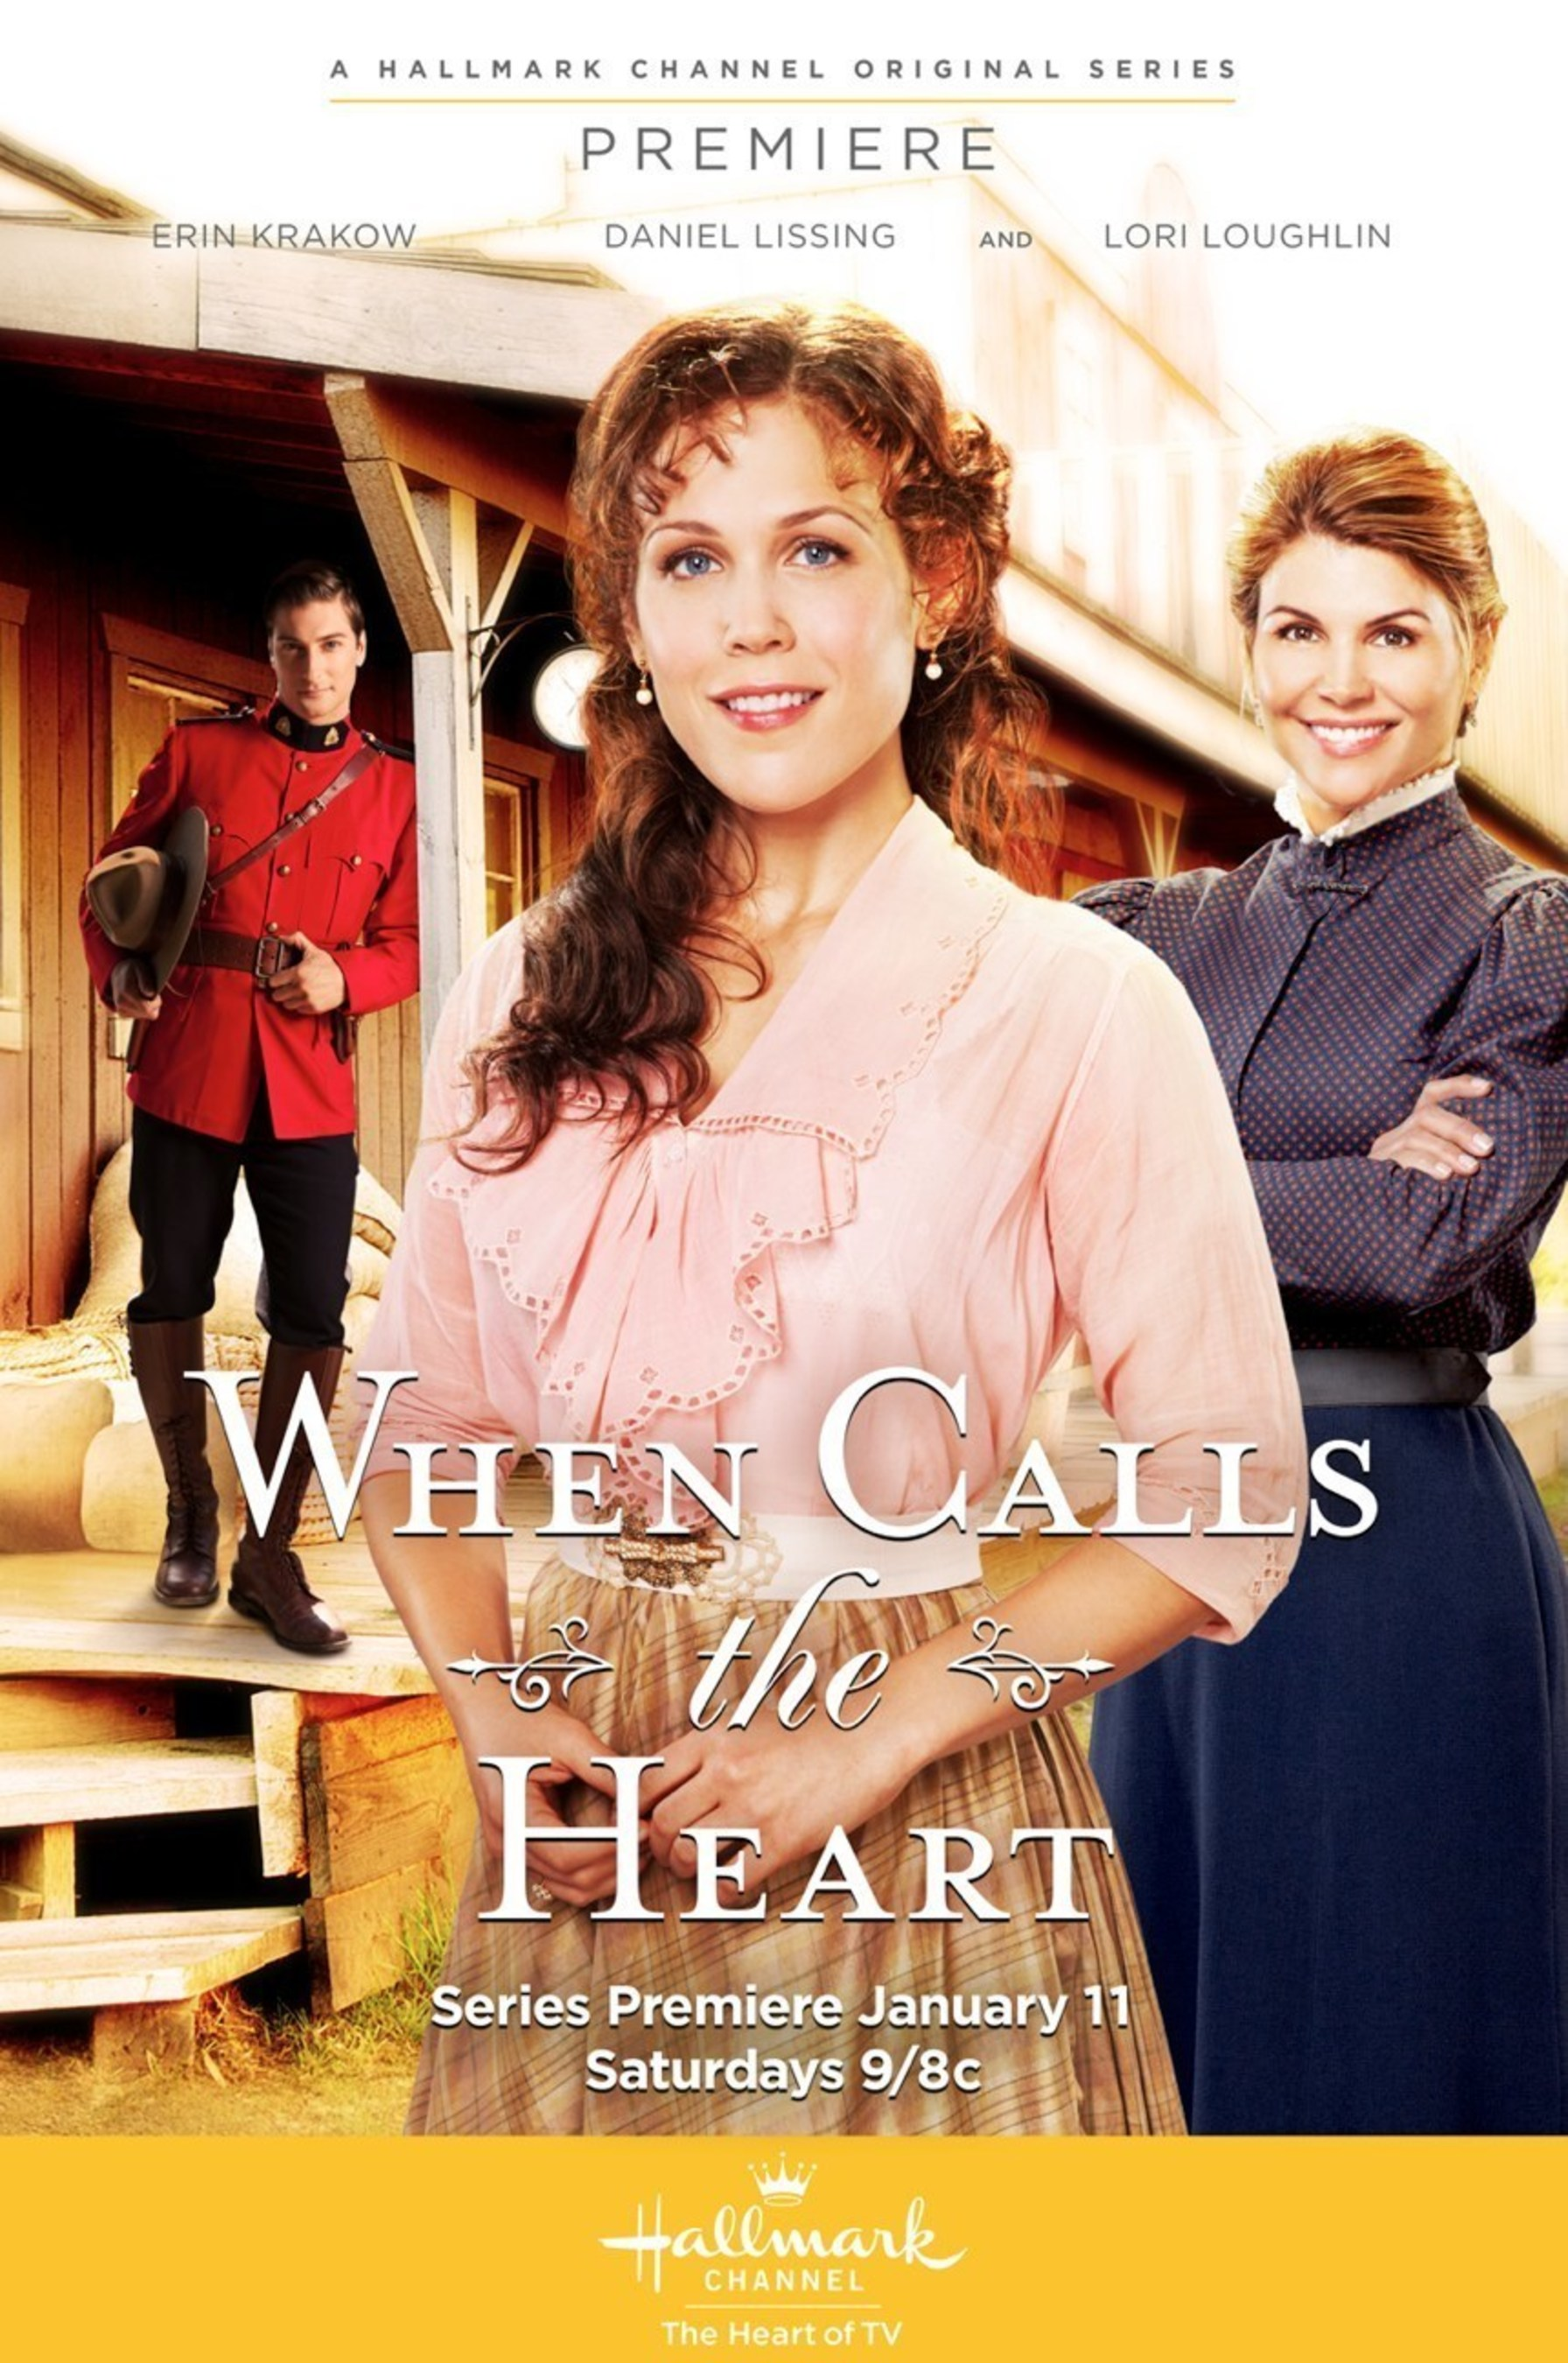 Pacific Mercantile Bank Provides Financing for WHEN CALLS THE HEART Season 3 on Hallmark Channel